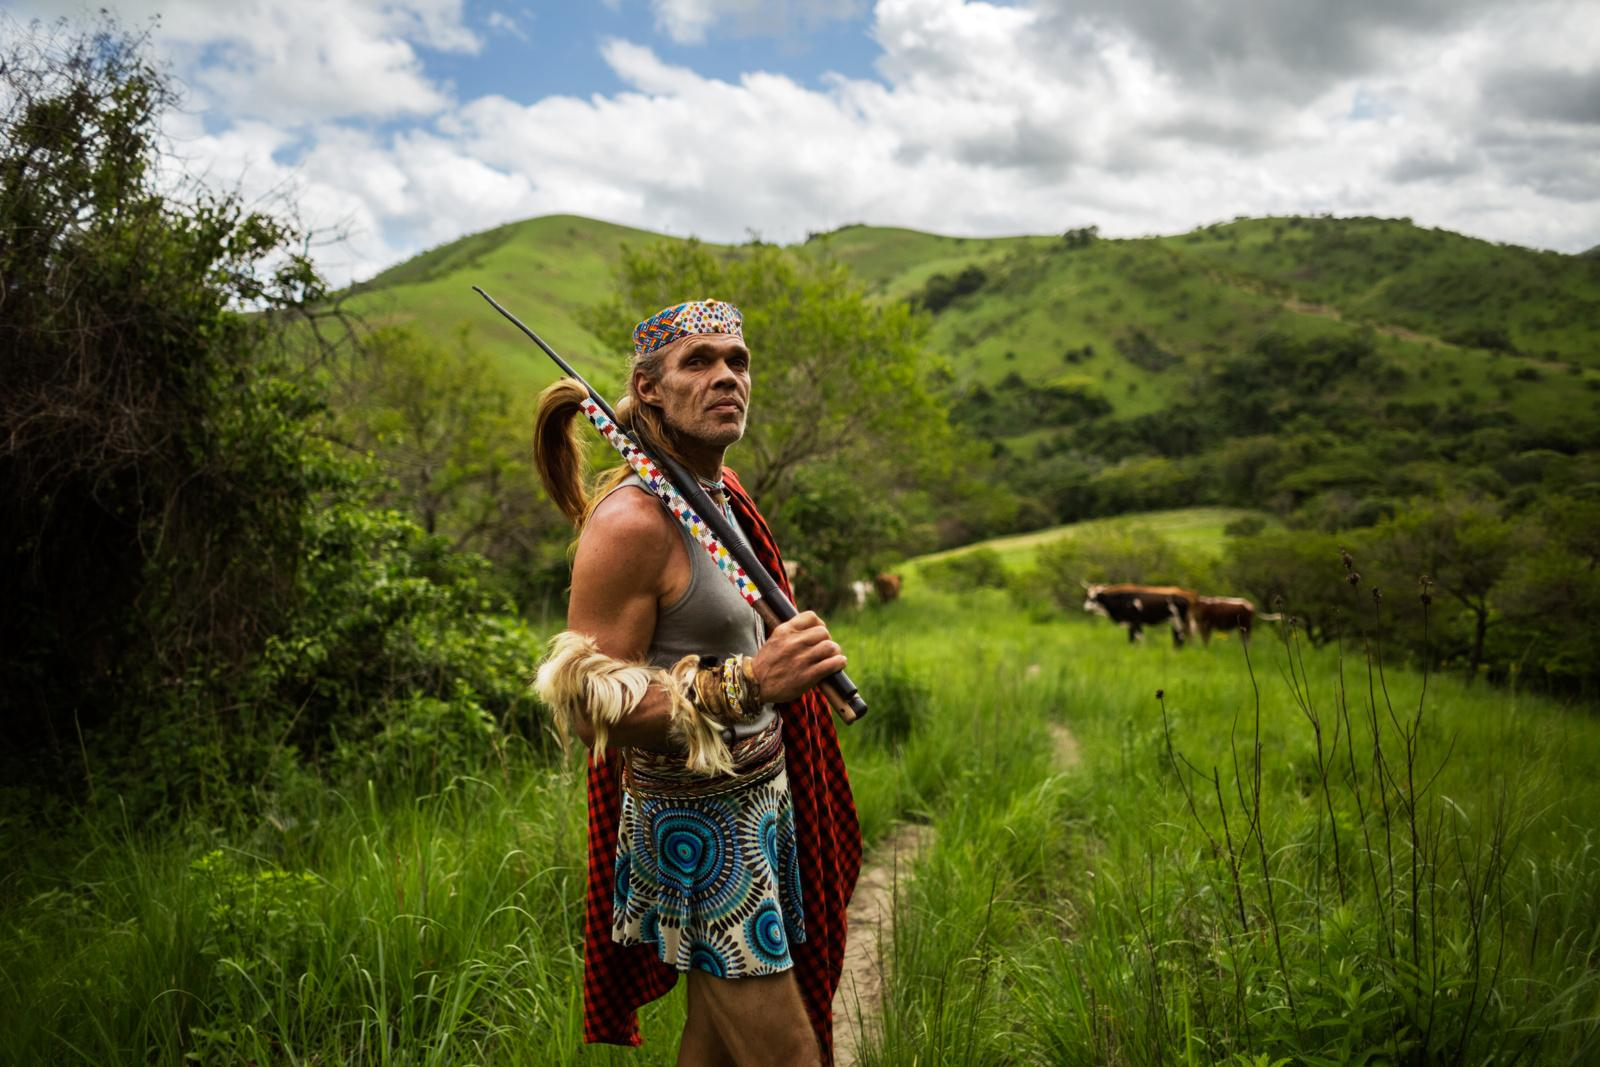 MDAKANE, LUSIKISIKI DISTRICT, SOUTH AFRICA - NOVEMBER 17, 2014: Holding his wip and itshoba (cow-tail whisk) in his hand, Chris Ntombemhlophe Reid, 50, pauses his walk through the rural areas of the transkei to check on his thwasa (sangoma trainee) Nolwandle on November 17, 2014 in Mdakane, Lusikisiki District, South Africa. Since thwasas are not allowed to walk among cows before they dream 'their cow' as an offering to their ancestors and the last step of their training, Chris Ntombemhlophe Reid wants to make sure that Nolwandle walks around the cows. The wip and itshoba are traditional sticks that indicate the status of a sangoma and serve as means to connect to the ancestors. During journeys sangomas carry at least one in their hands as a sign of respect.